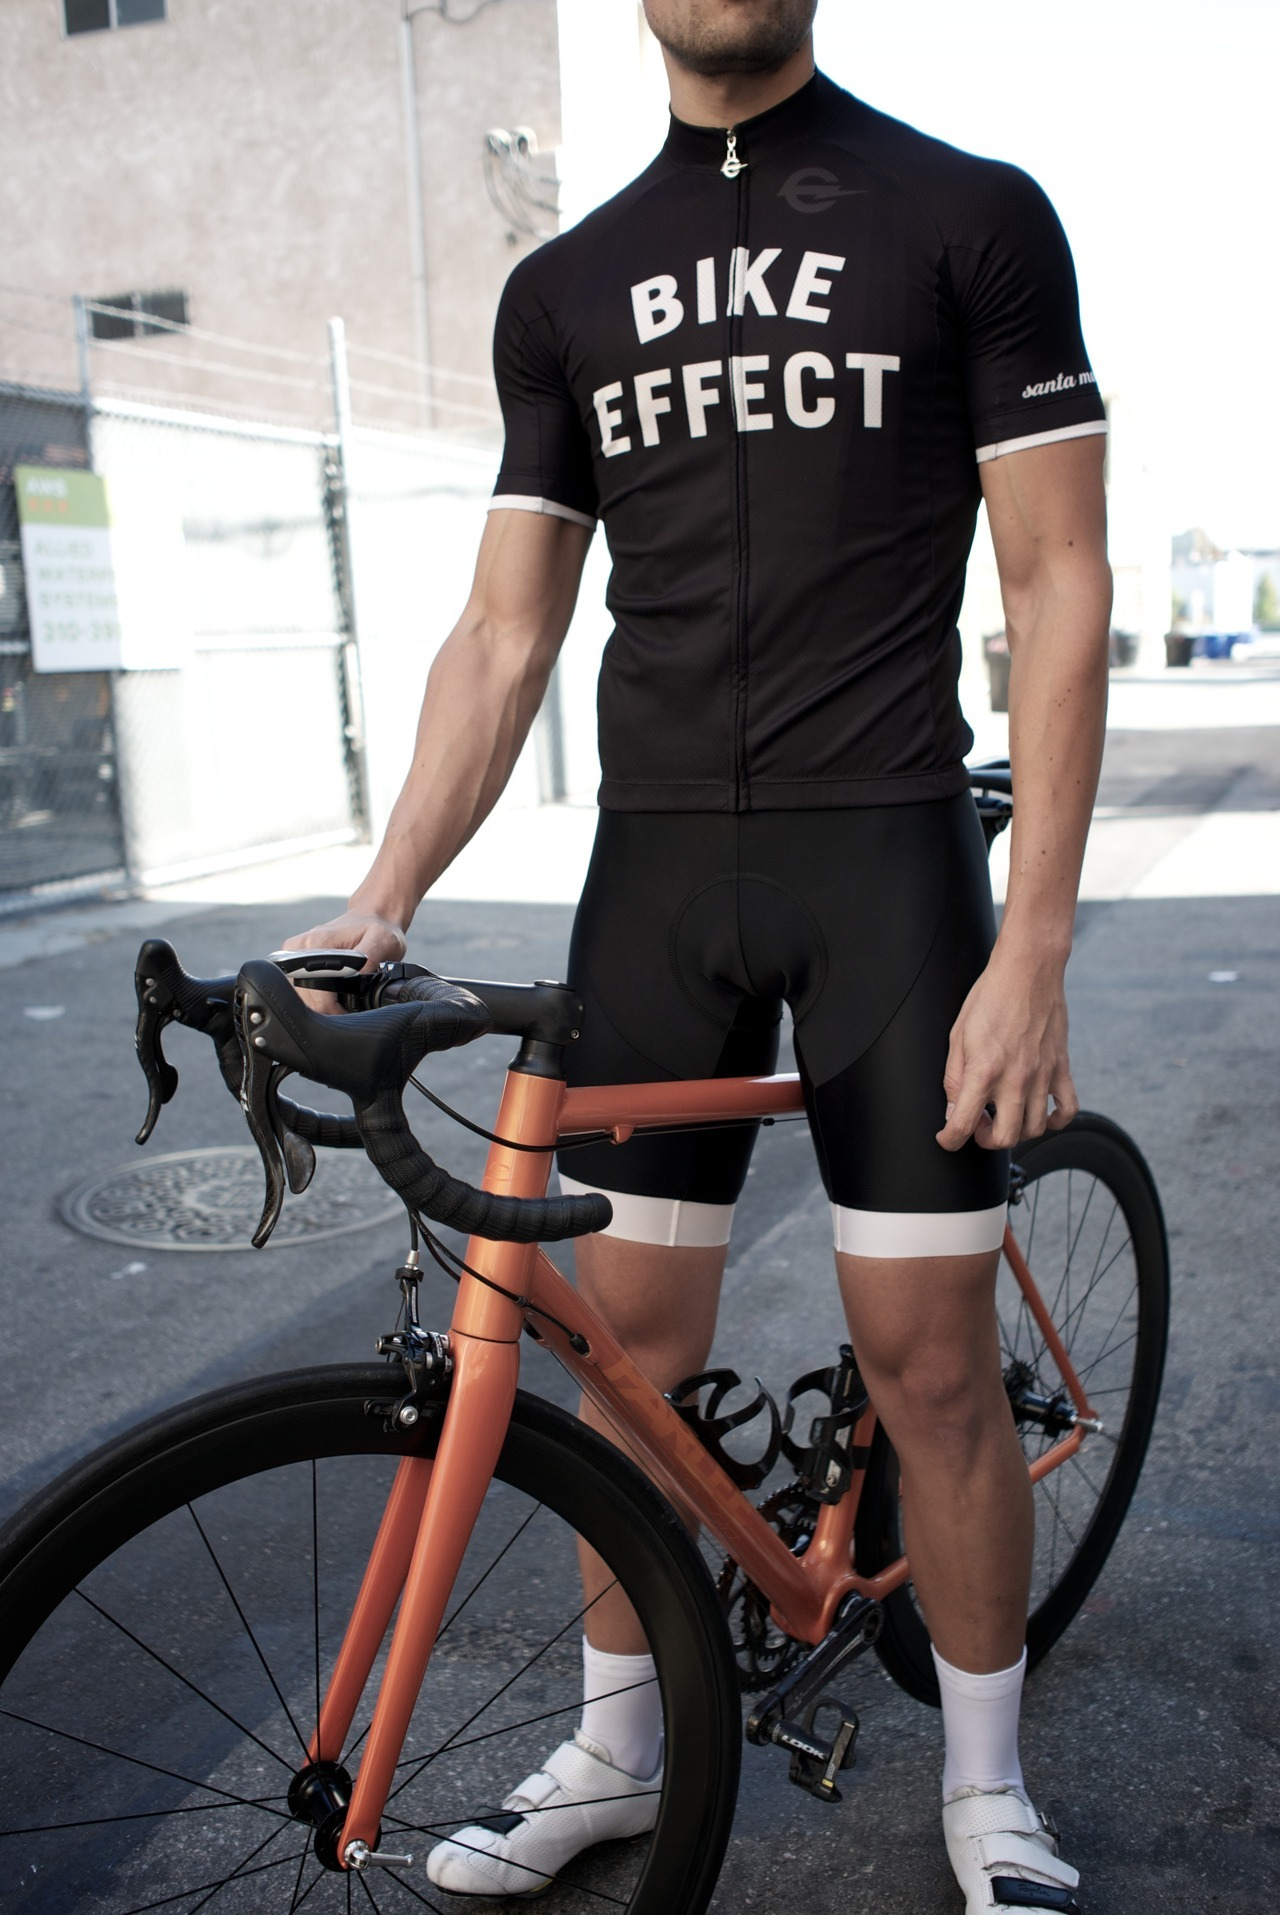 The Bike Effect kit pre-order window closes Sunday, November 18. Place your pre-order now to ensure that you are guaranteed a kit!   Stop by Bike Effect to try on our unisex kits and place your pre-order OR shop here. Women's kits are also available for pre-order and will look exactly the same as the unisex kits with one exception: women's kits offer shorts instead of bibs. If you would like bibs, please order the unisex bibs! Sizing runs the same.  Kits will be available beginning the first week of December…just in time for the holidays!